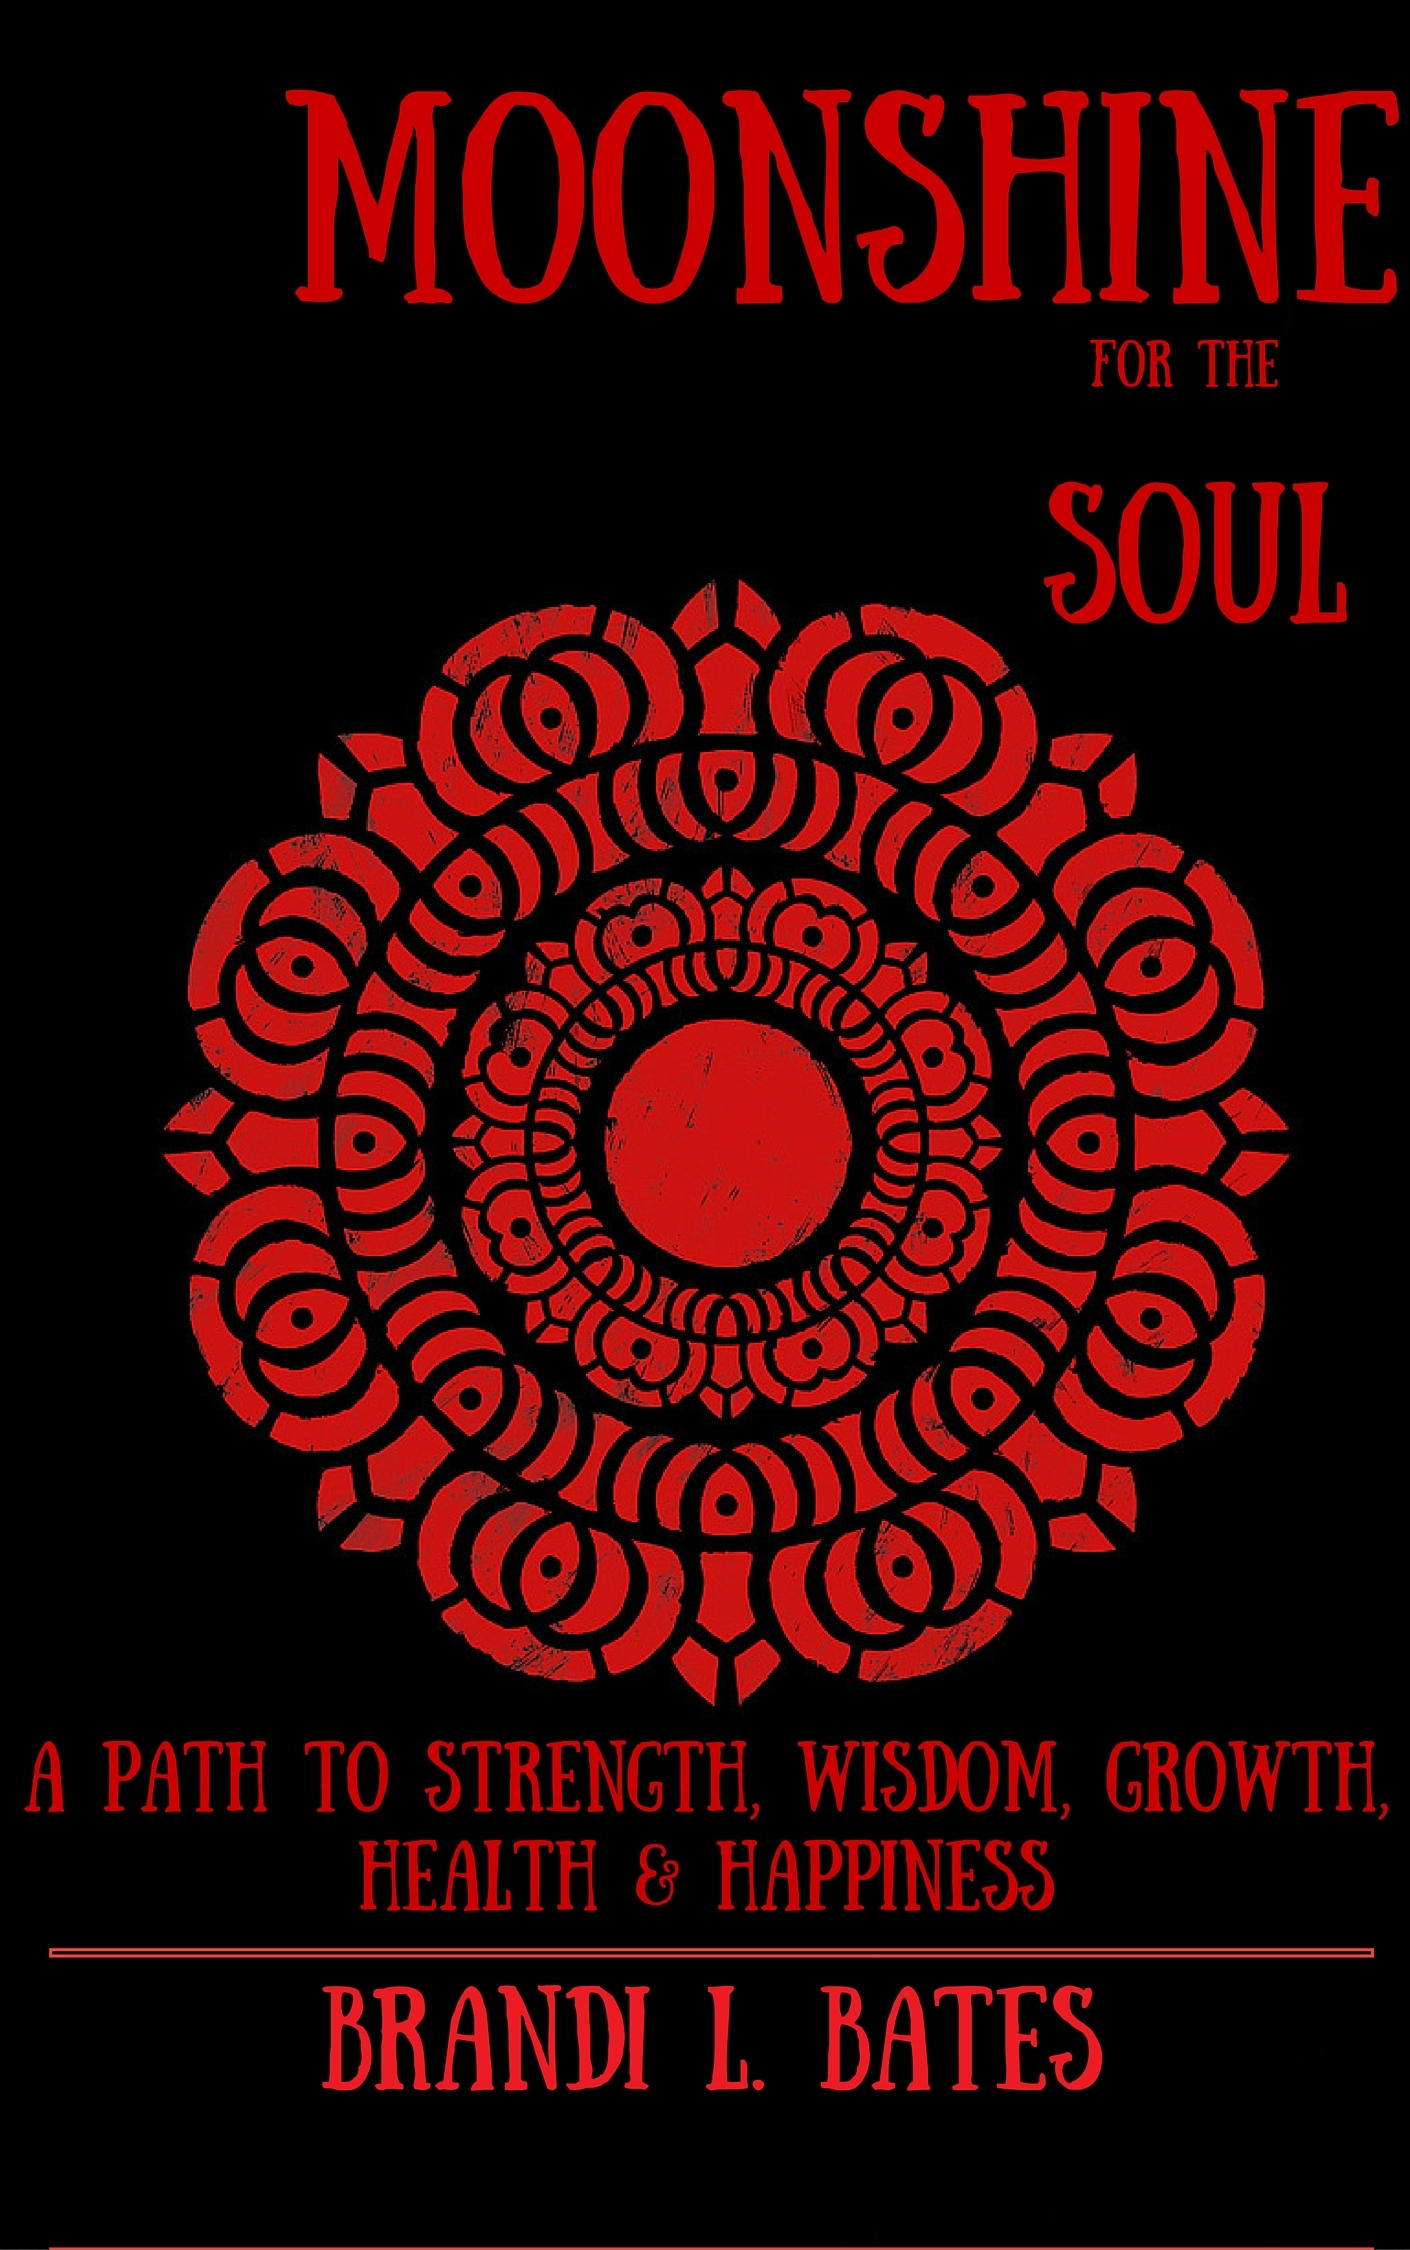 Moonshine For The Soul: A Path to Strength, Wisdom, Growth, Health & Happiness